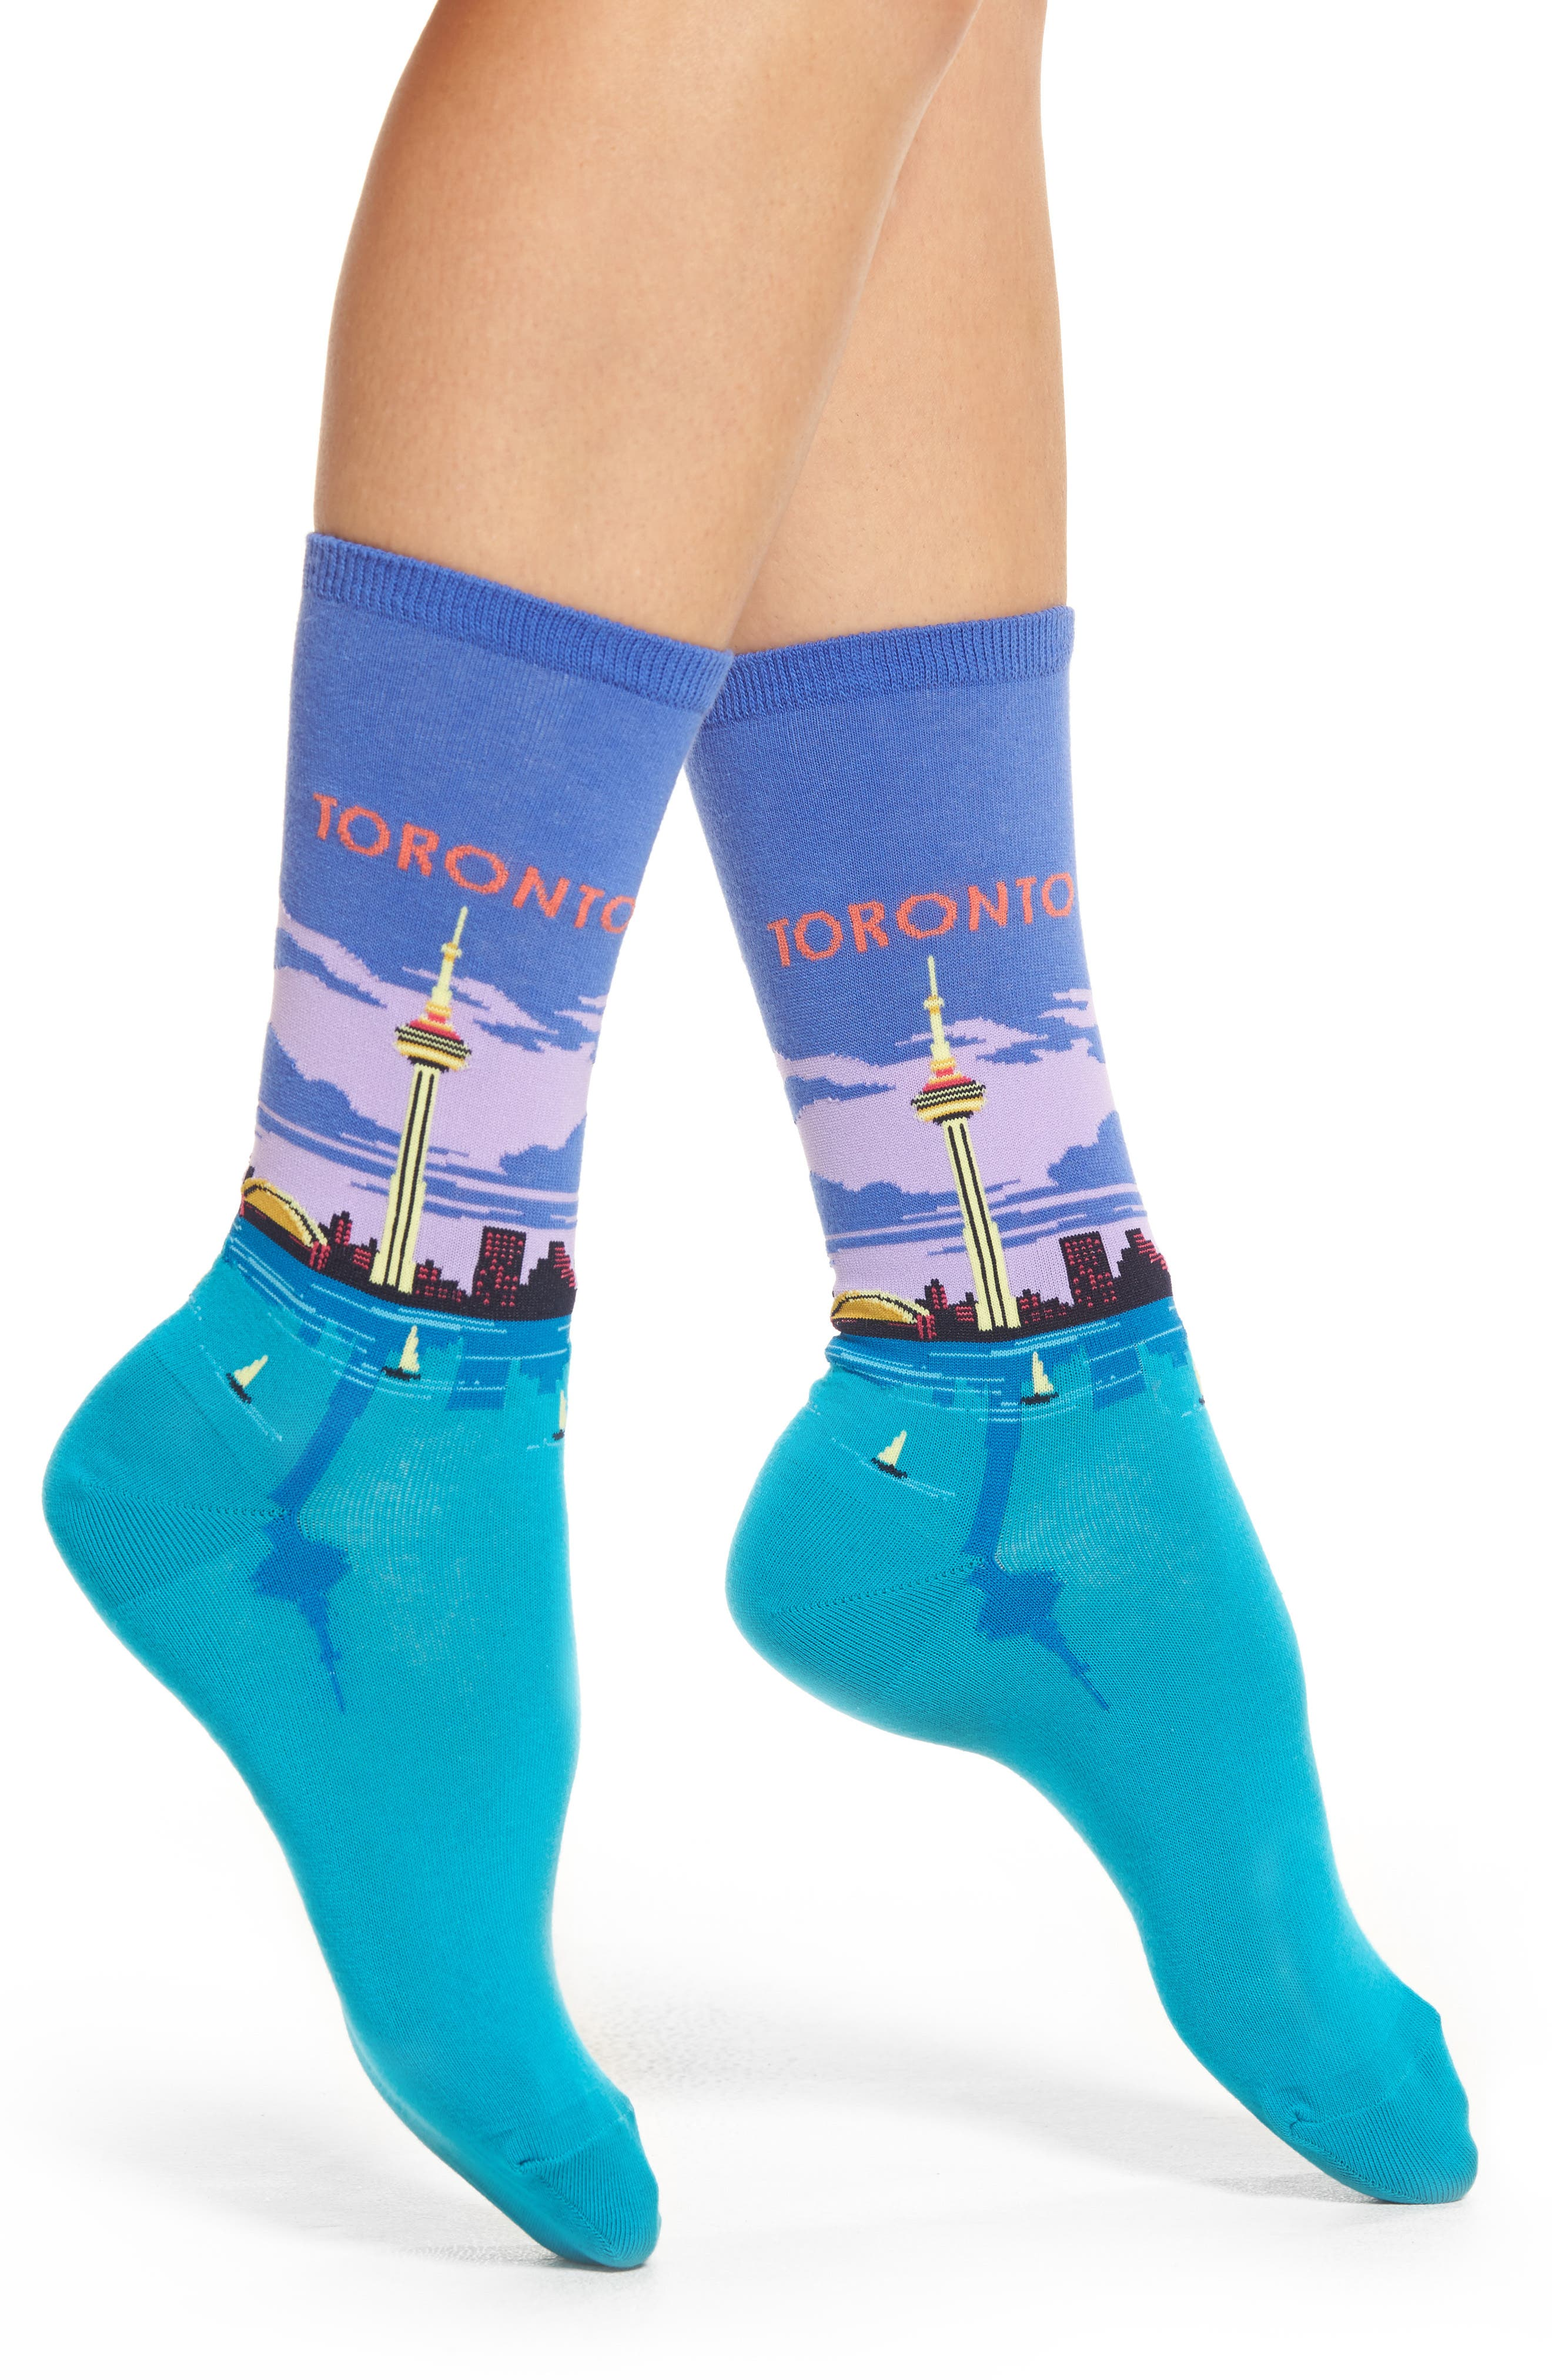 Alternate Image 1 Selected - Hot Sox Toronto Crew Socks (3 for $15)